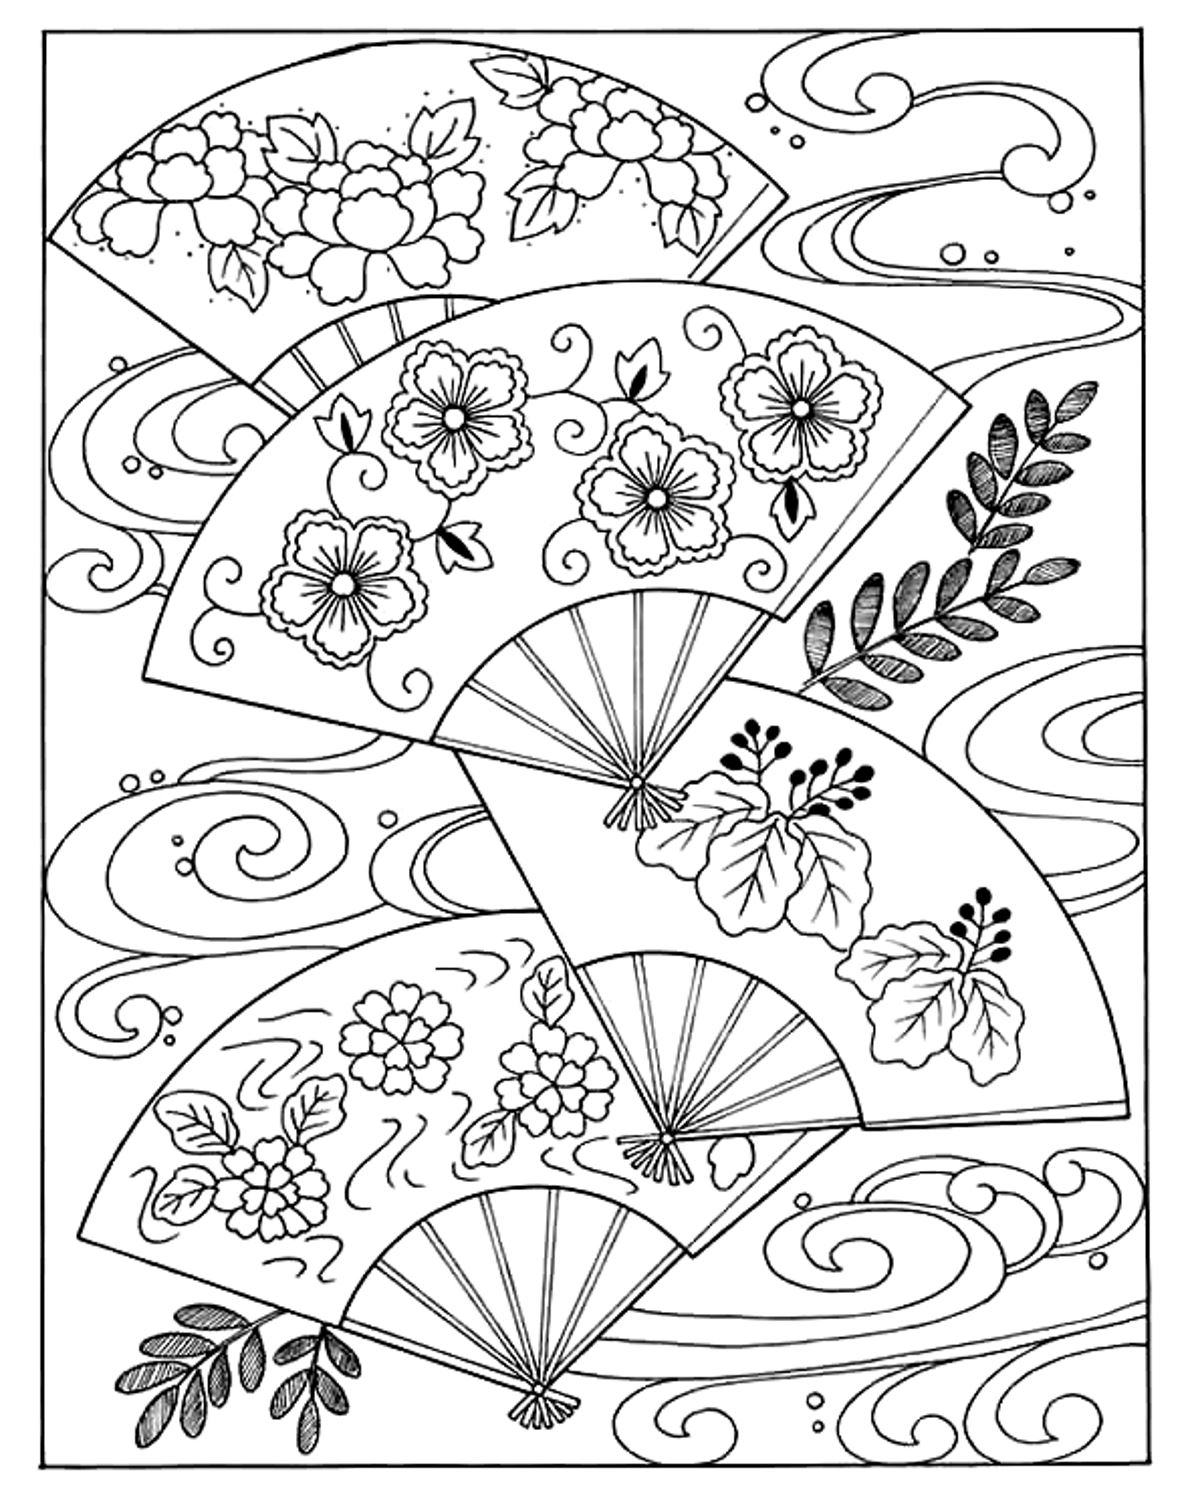 japanese coloring sheets japan coloring pages to download and print for free japanese sheets coloring